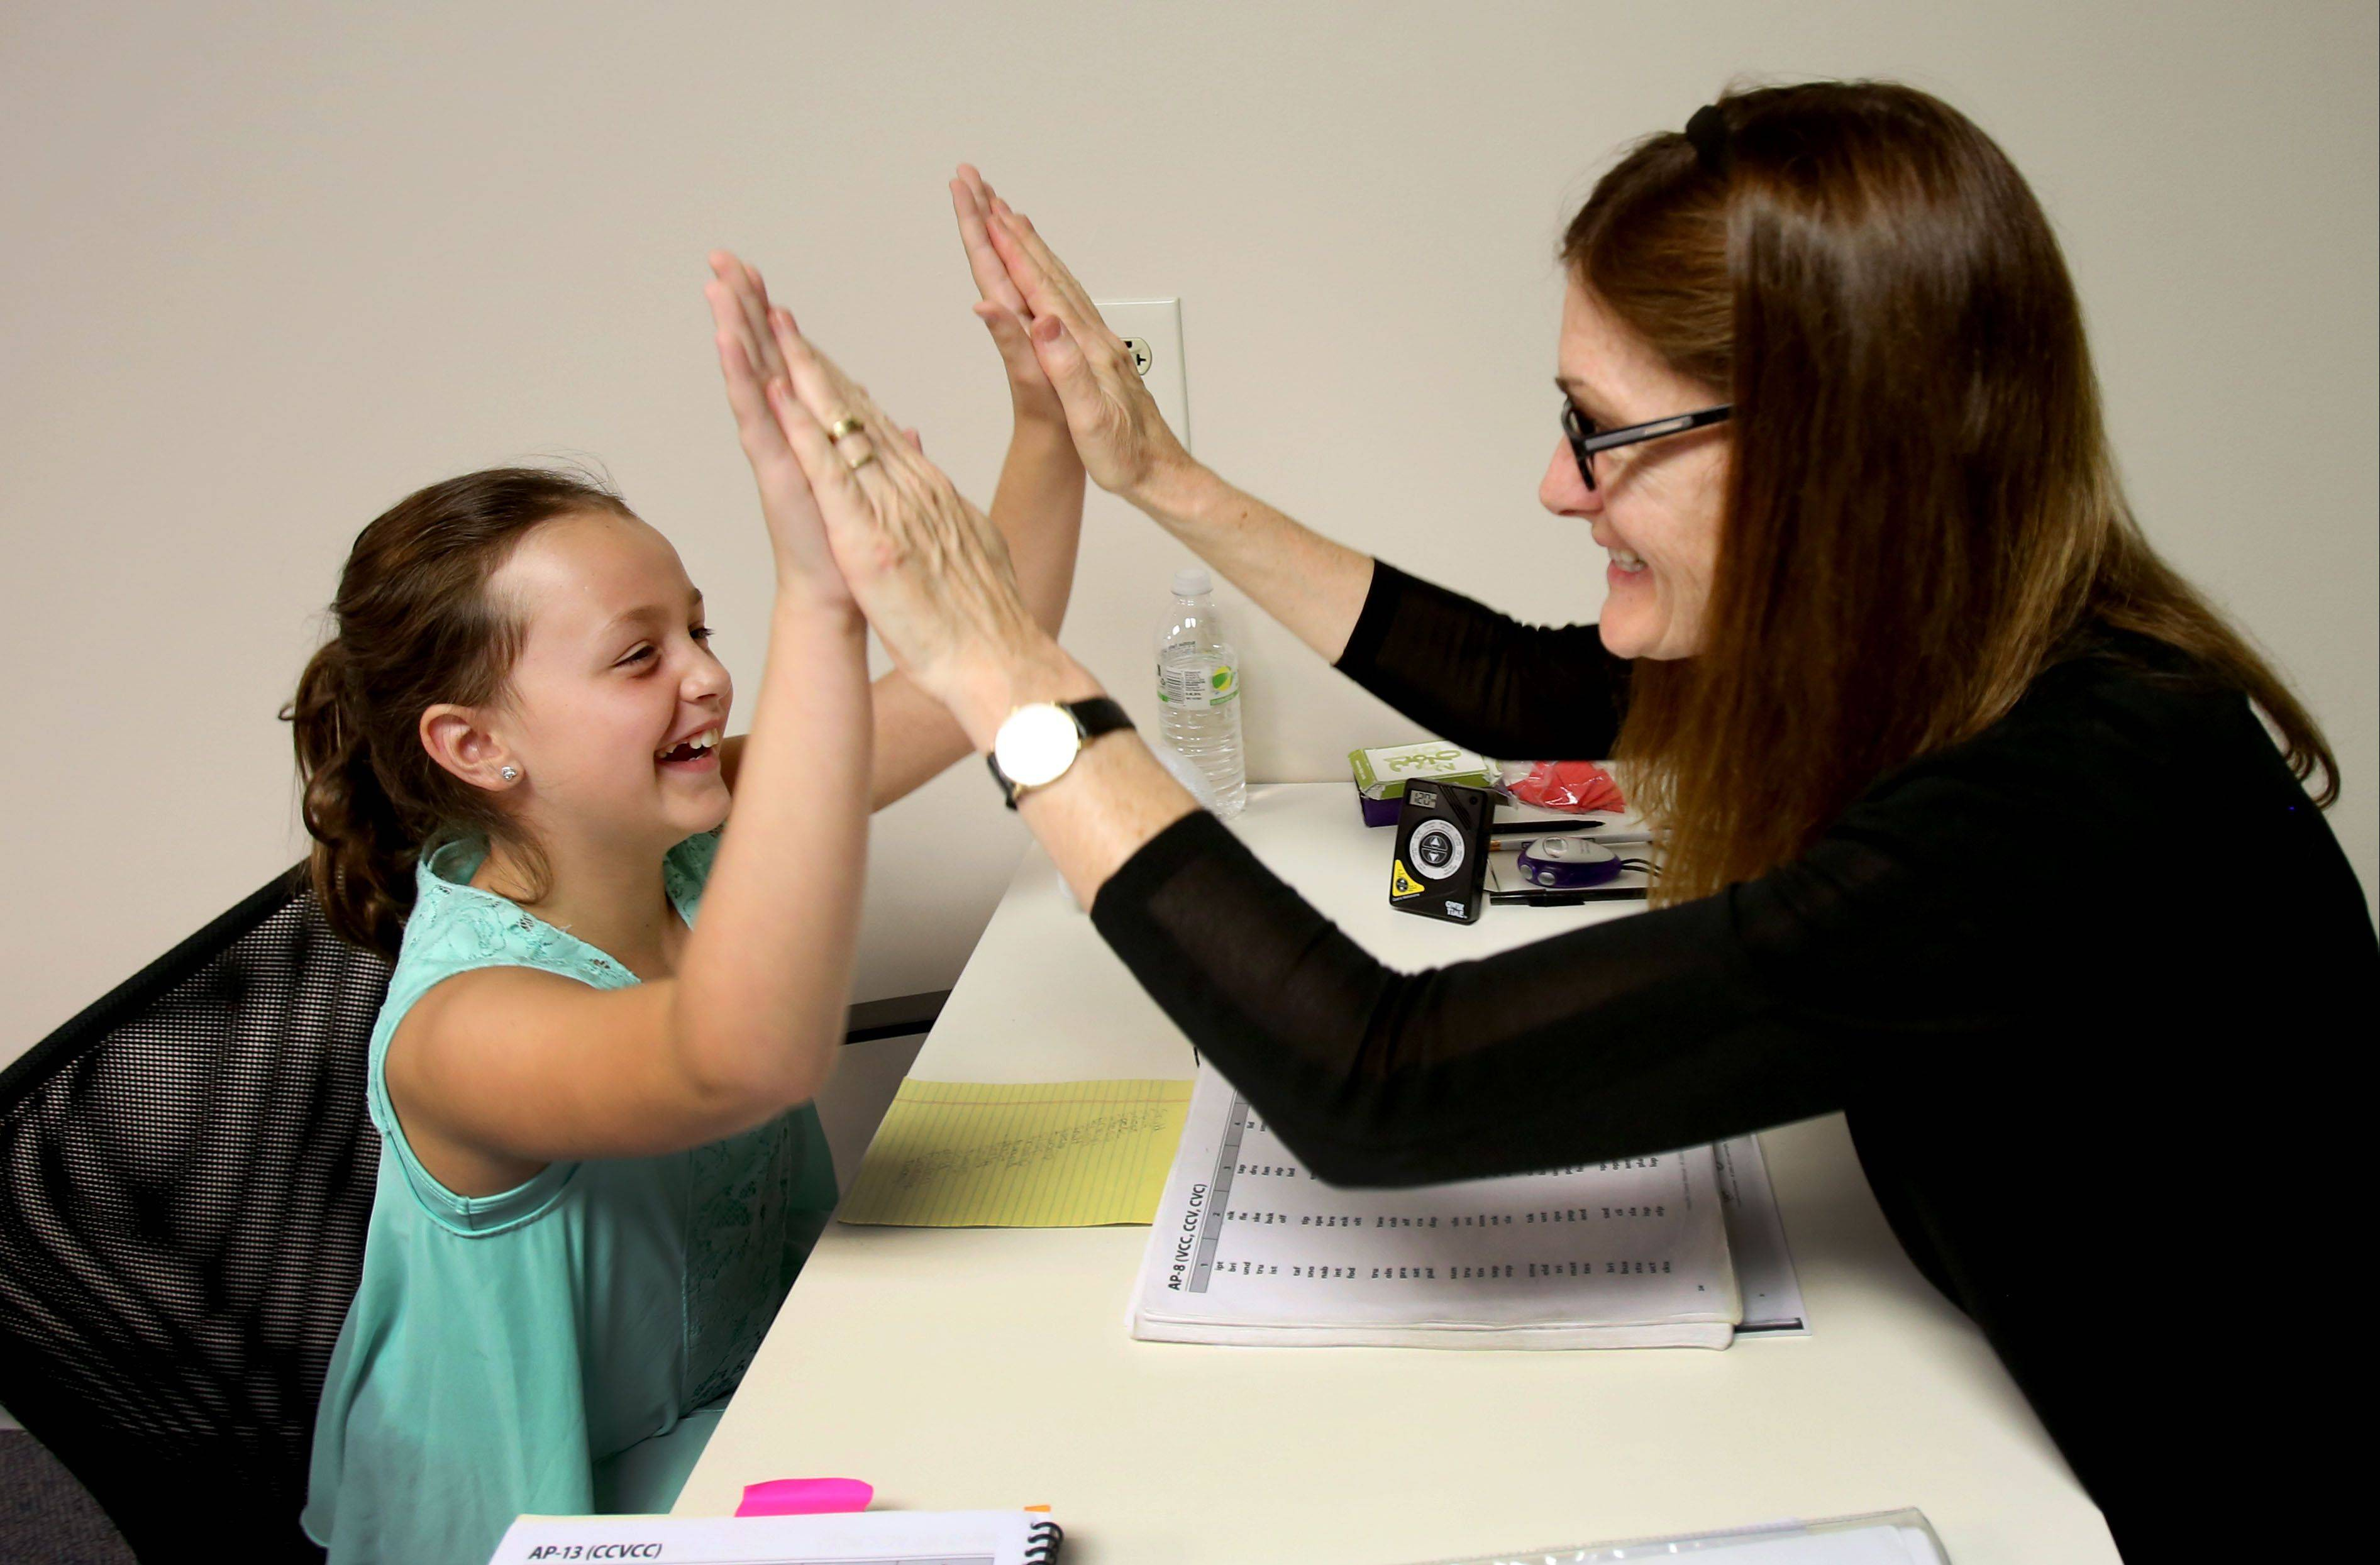 Megan Mason, 9, of Naperville, is congratulated by cognitive brain trainer Becky Lenzi at the LearningRx Chicago-Naperville brain training center. Students receive personalized instruction with the same trainer several times a week to strengthen cognitive skills such as visual and auditory processing, memory and attention.